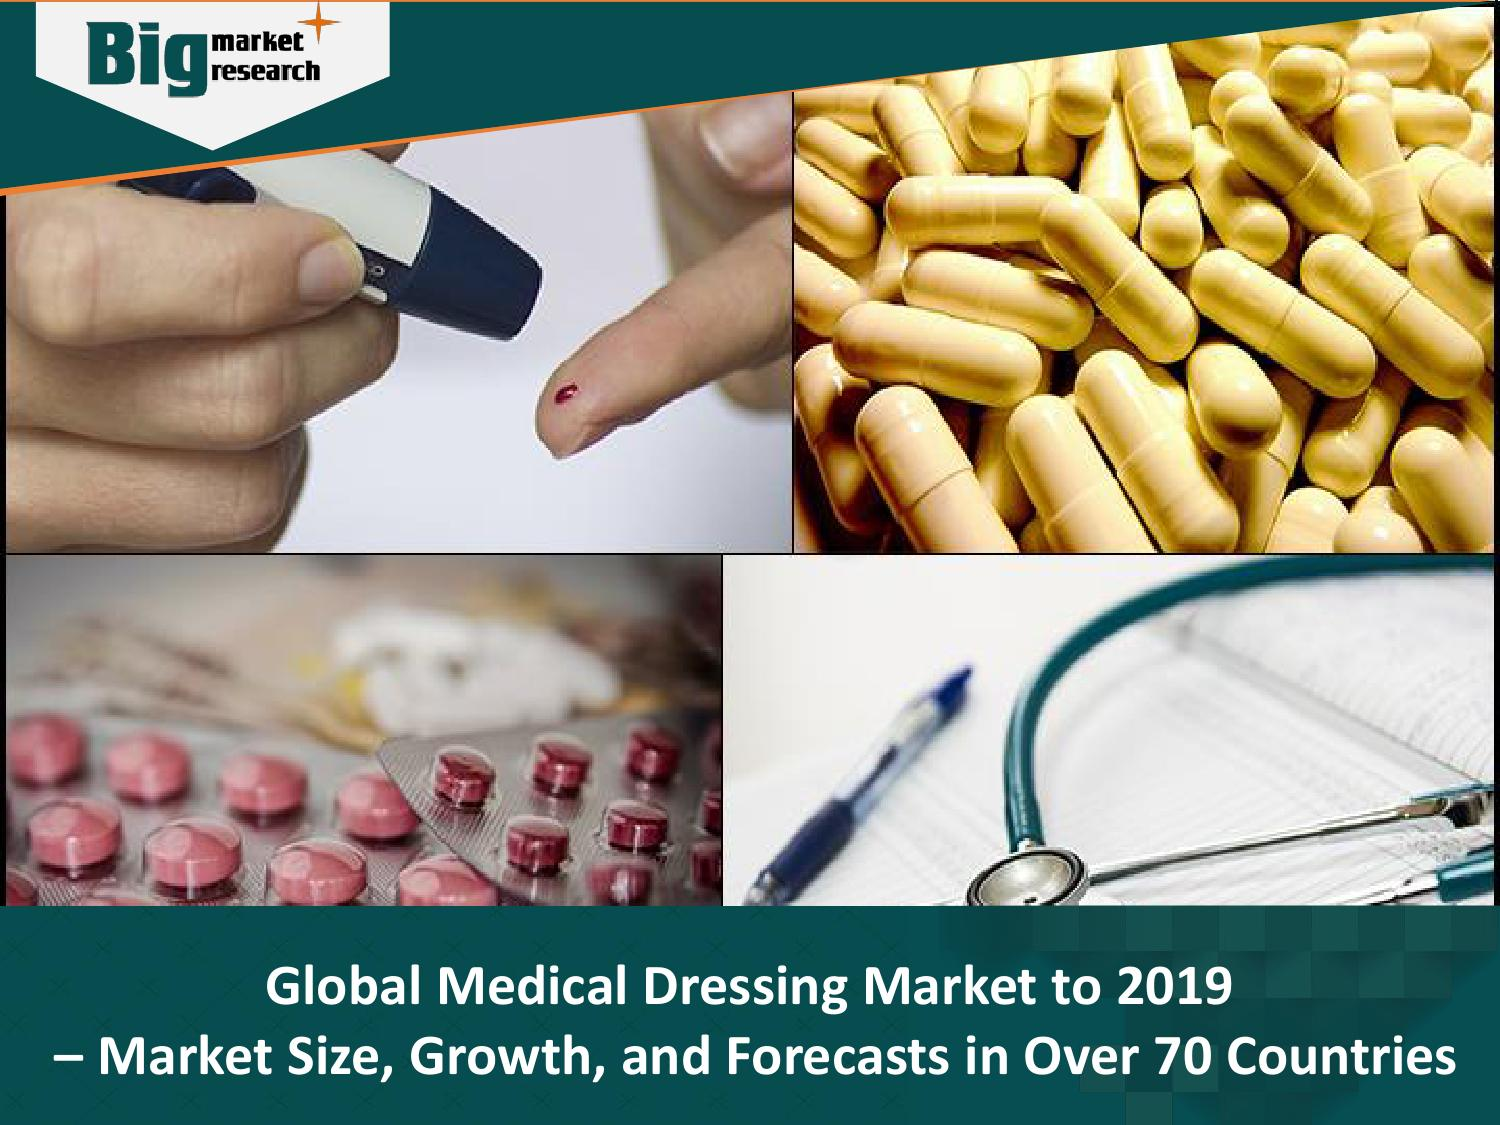 pain management therapeutics market global The global pain management therapeutics market has huge potential for growth due to the large population that is affected by medically significant pain the market is growing at a moderate growth rate, driven by the cancer pain, low back pain and post-operative pain relief markets.